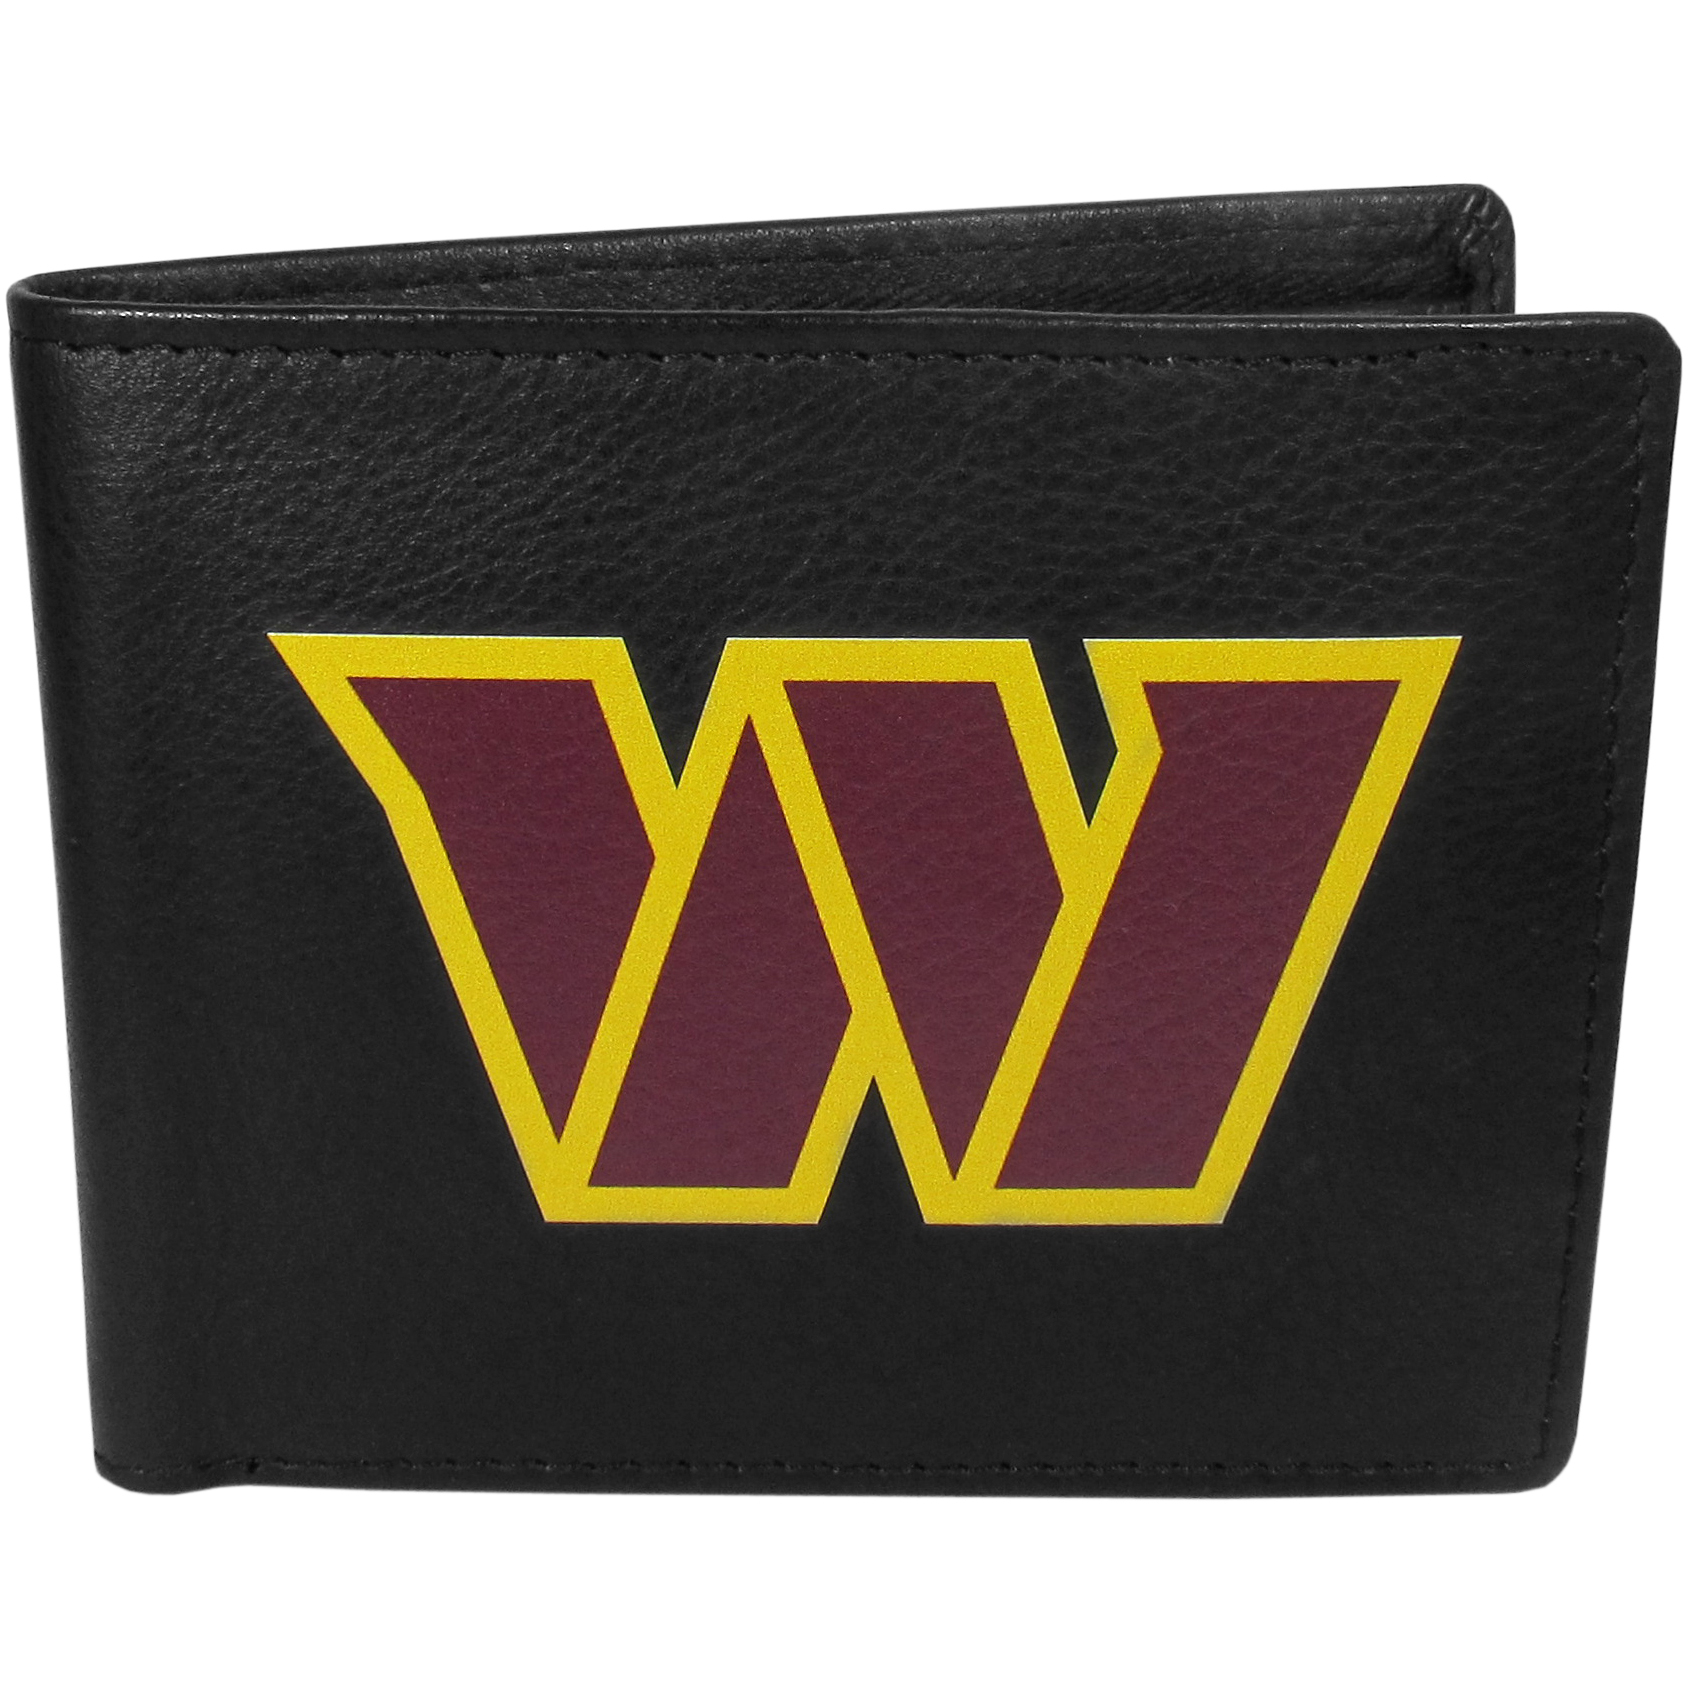 Washington Redskins Leather Bi-fold Wallet, Large Logo - Our classic fine leather bi-fold wallet is meticulously crafted with genuine leather that will age beautifully so you will have a quality wallet for years to come. The wallet opens to a large, billfold pocket and numerous credit card slots and has a convenient windowed ID slot. The front of the wallet features an extra large Washington Redskins printed logo.